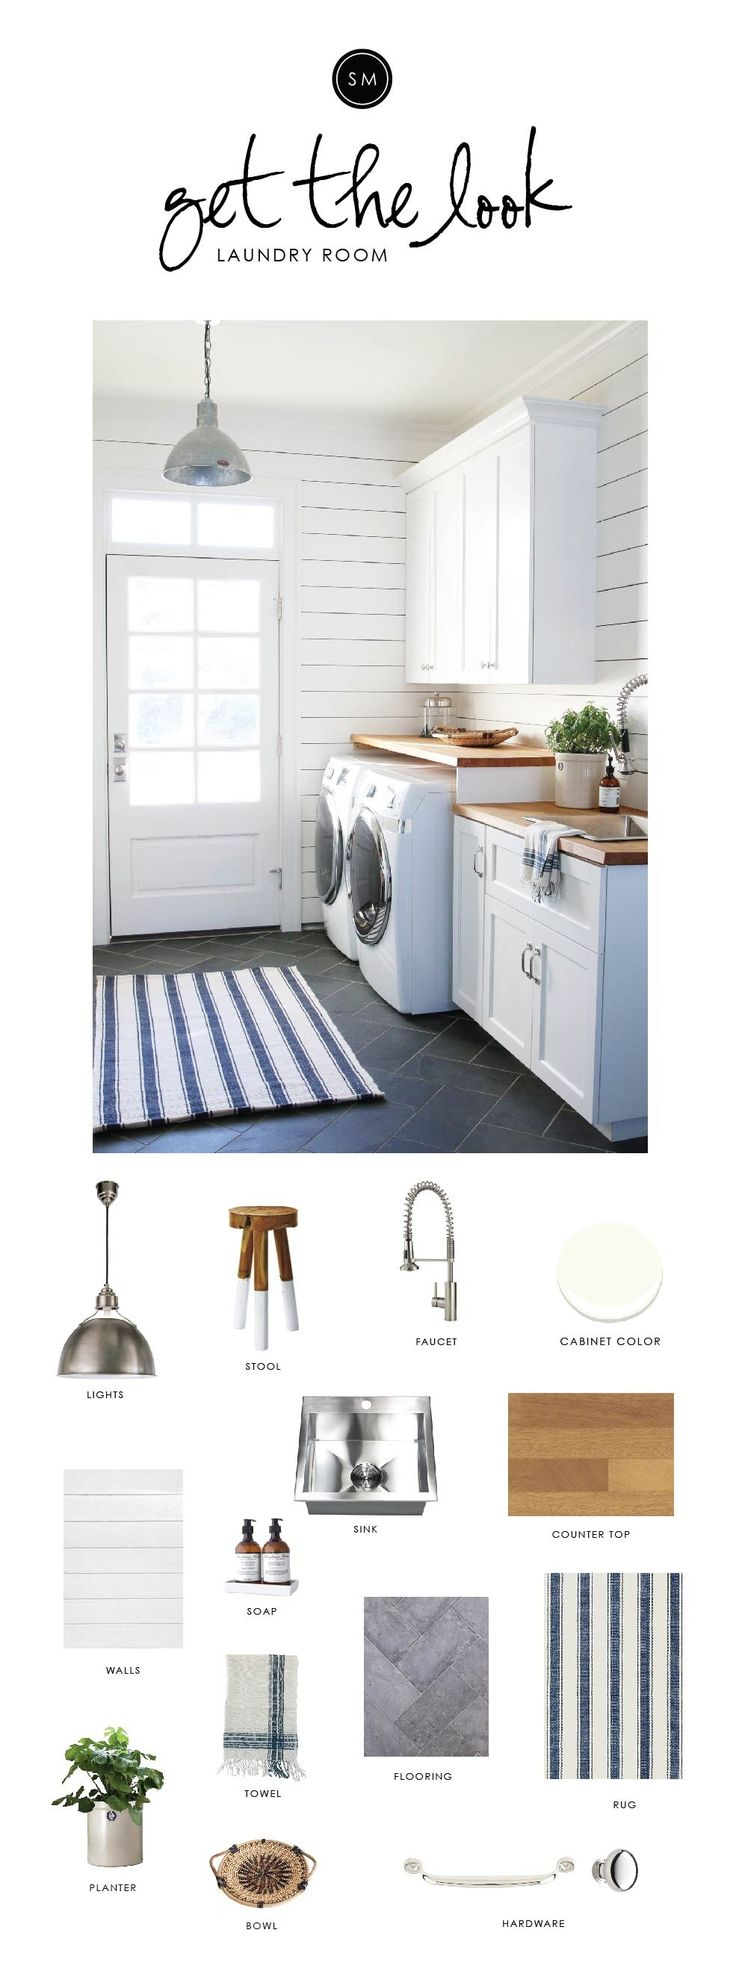 Oc Kitchen And Flooring 17 Best Ideas About Studio Mcgee On Pinterest Balboa Mist